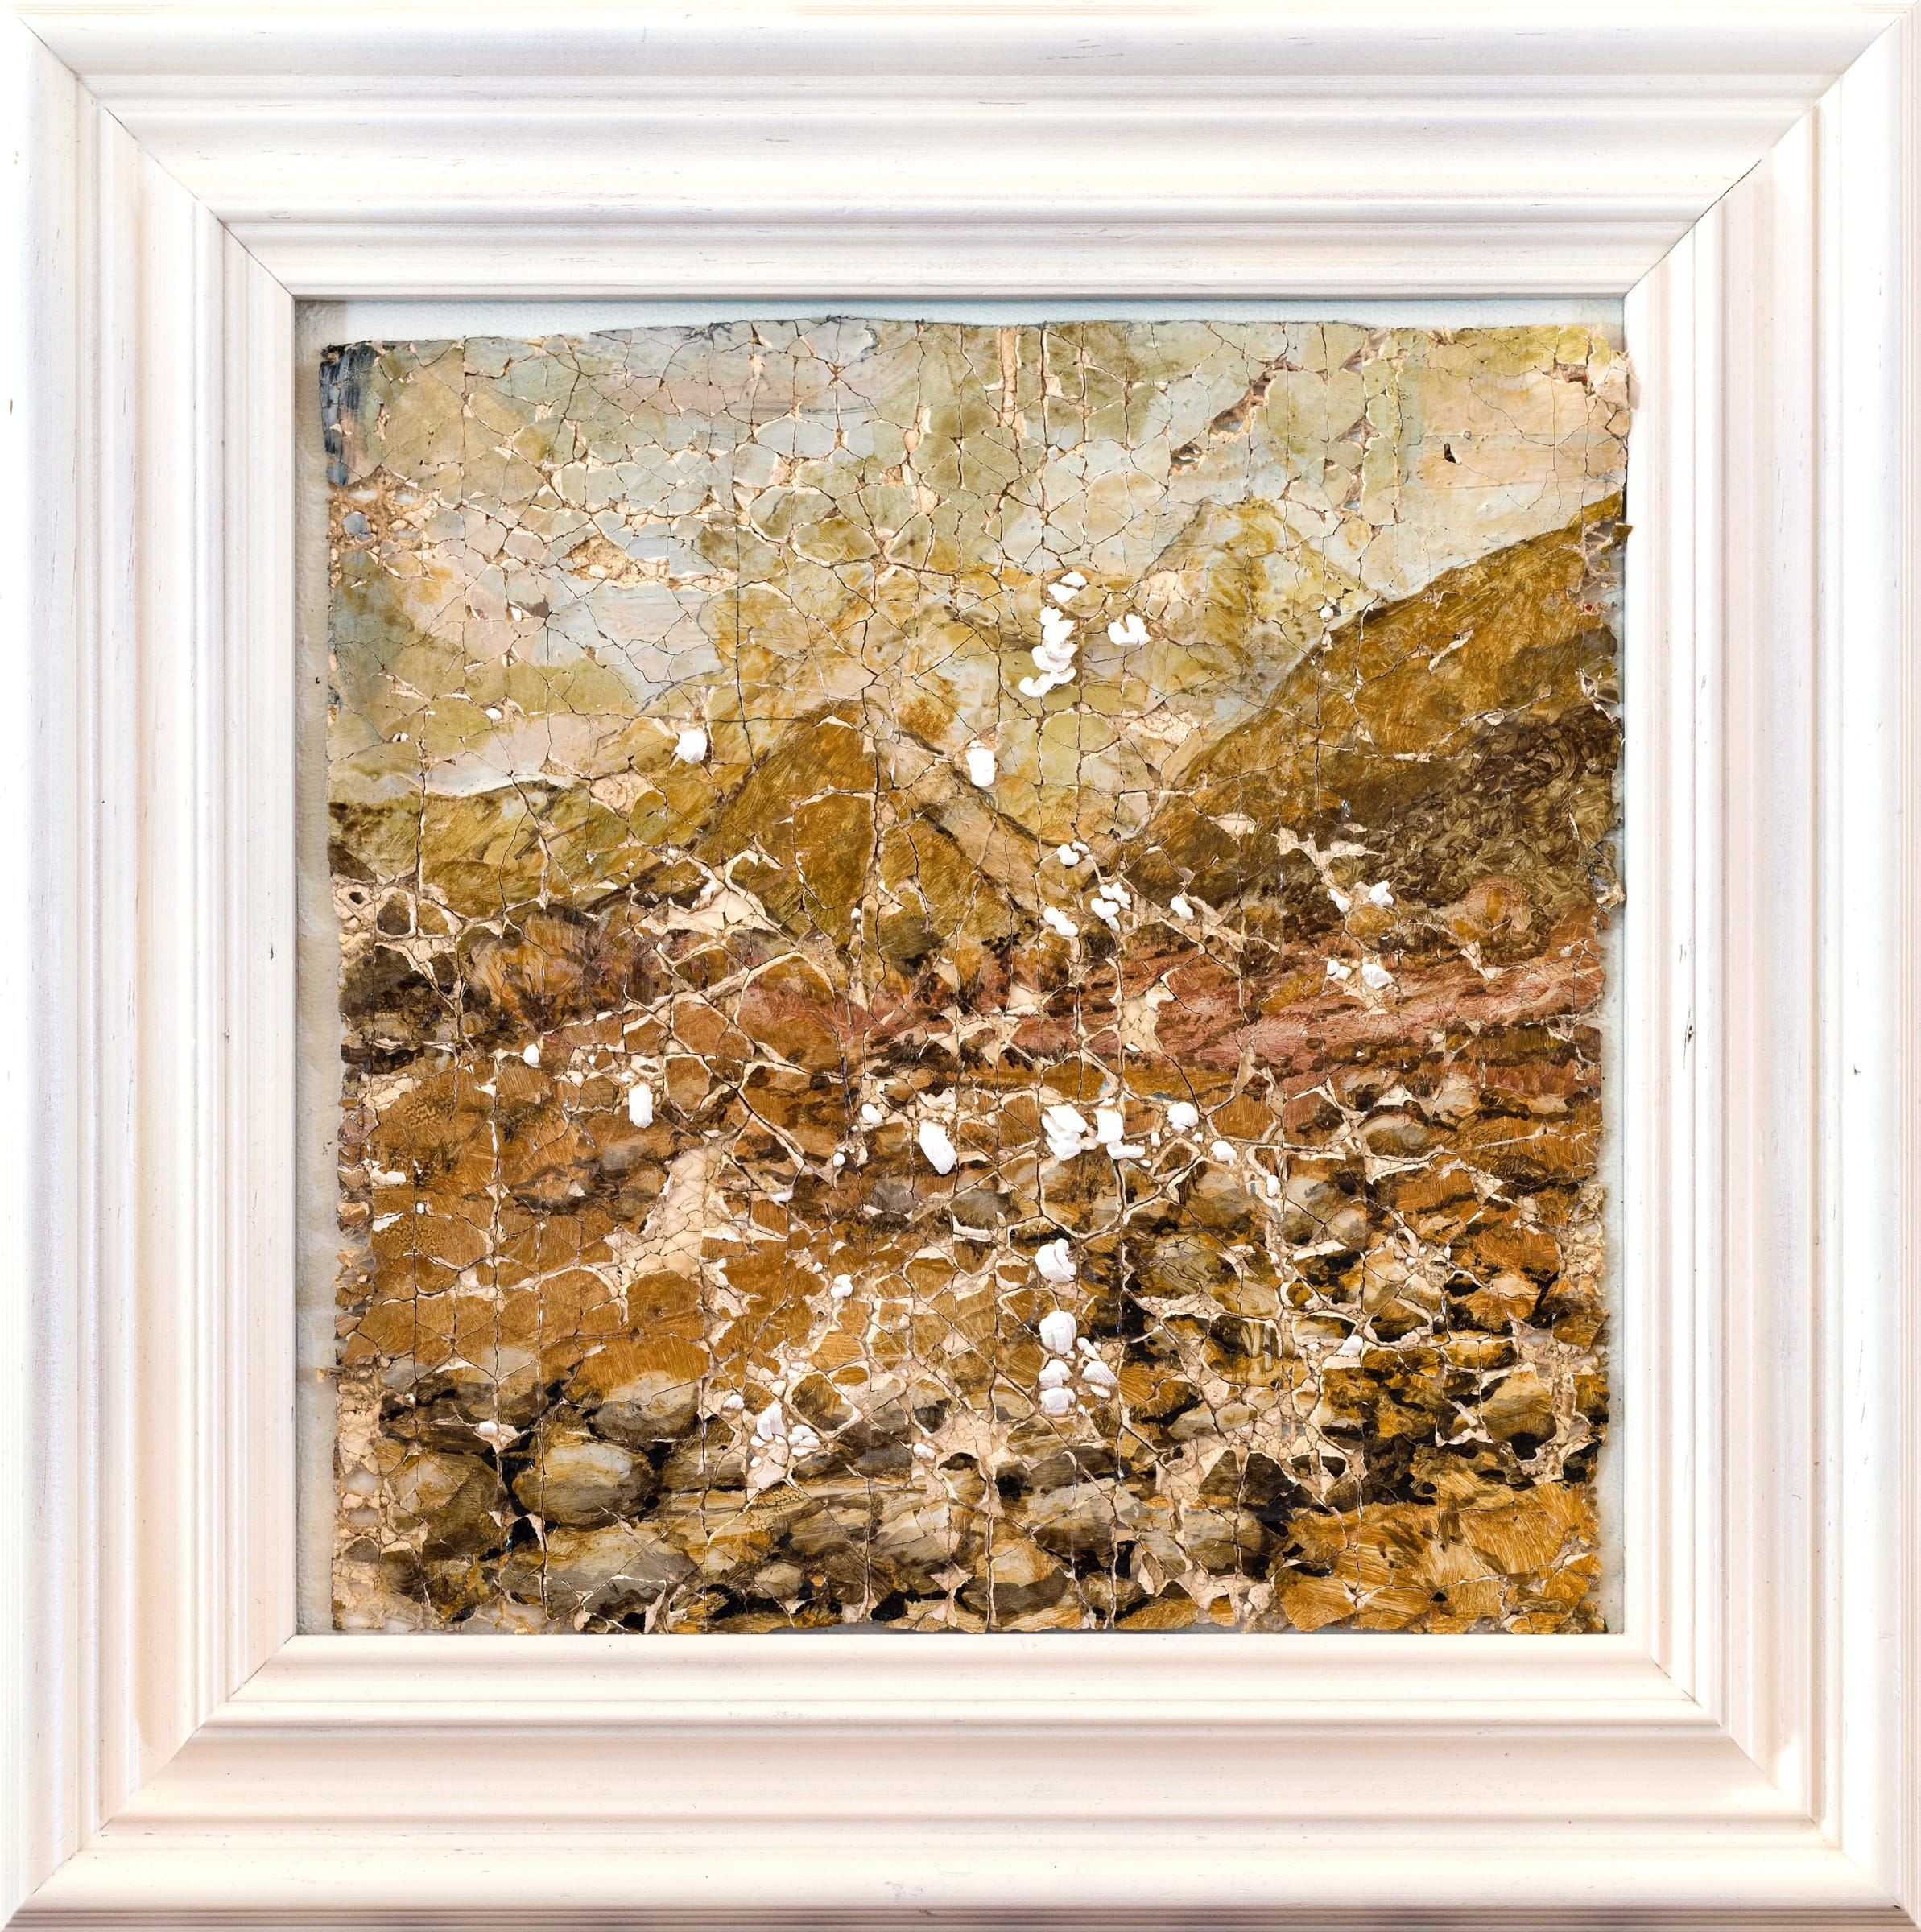 <span class=&#34;link fancybox-details-link&#34;><a href=&#34;/exhibitions/21/works/artworks7069/&#34;>View Detail Page</a></span><div class=&#34;medium&#34;>Oil on prepared plaster</div> <div class=&#34;dimensions&#34;>16.3 x 16.3 in<br />41.5 x 41.5 cm</div>